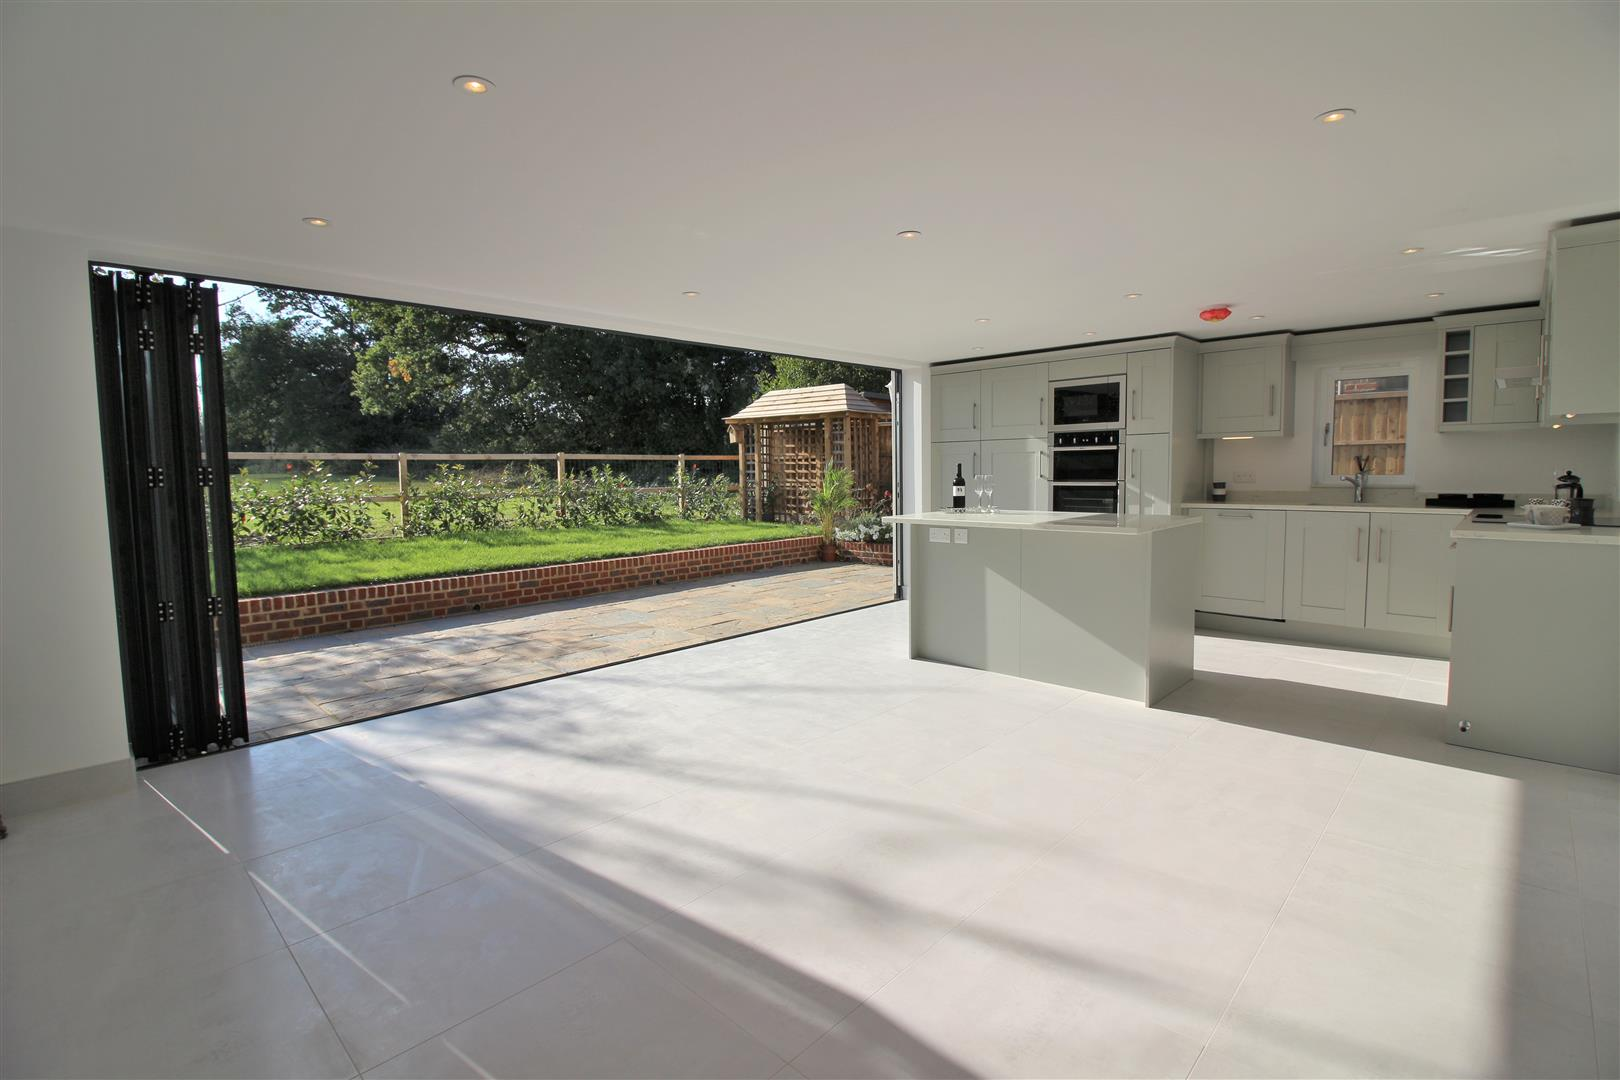 4 bed for sale in London Road, Shenley - (Property Image 5)